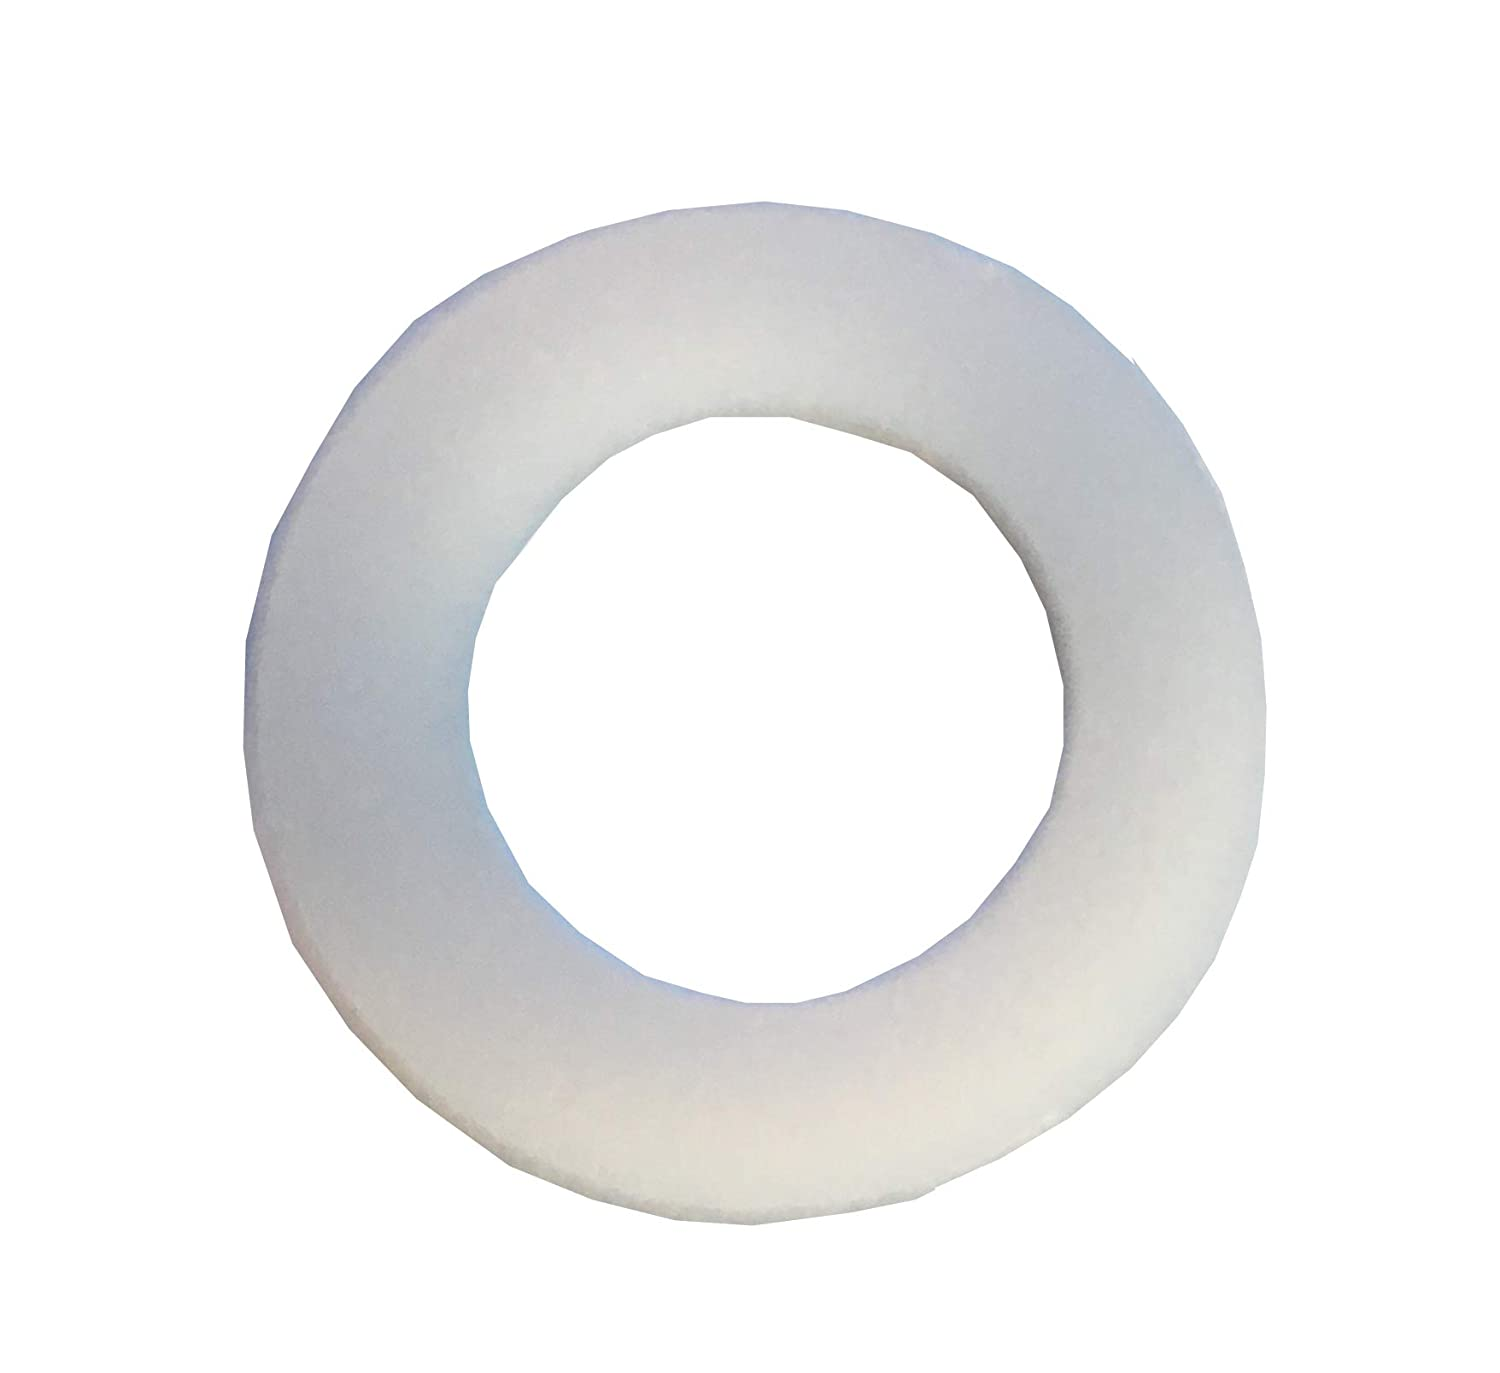 Clipsandfasteners Inc Clipsandfasteners 3//8-Inch Nylon Flat Washers .443-Inch I.D Pack of 50 .062-Inch Thick